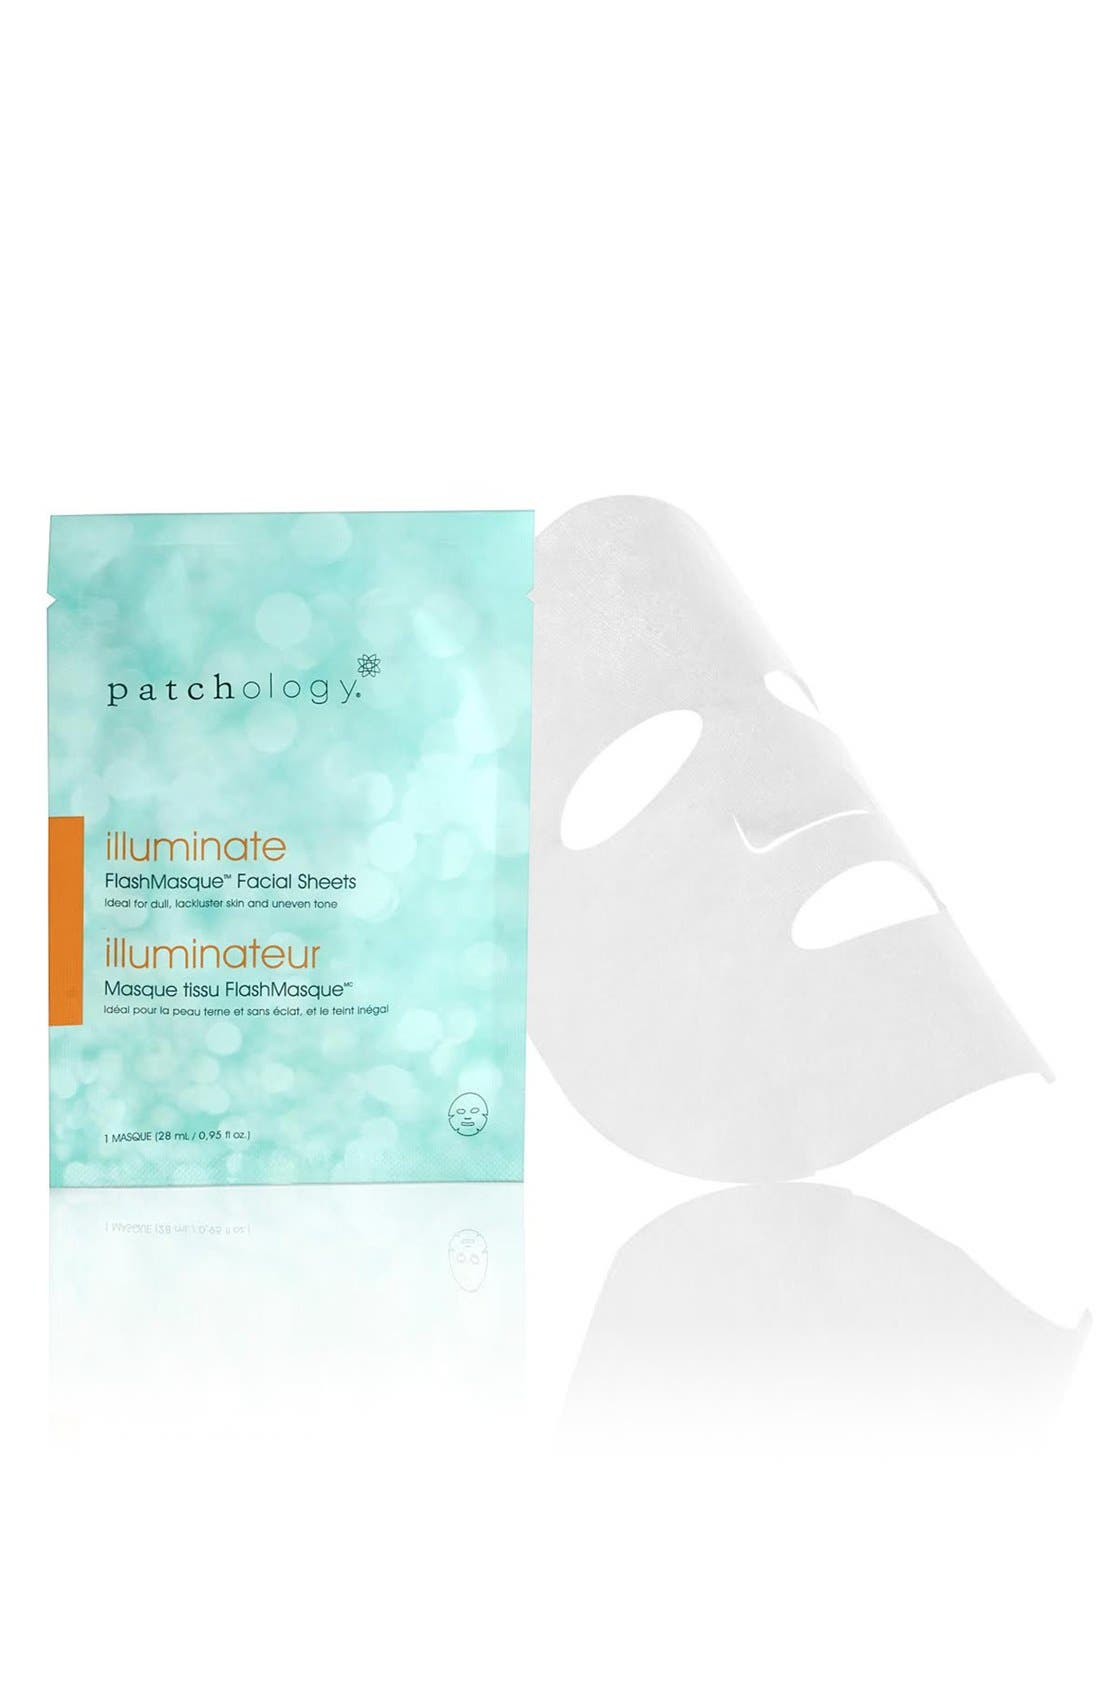 patchology Illuminate FlashMasque™ Facial Sheets